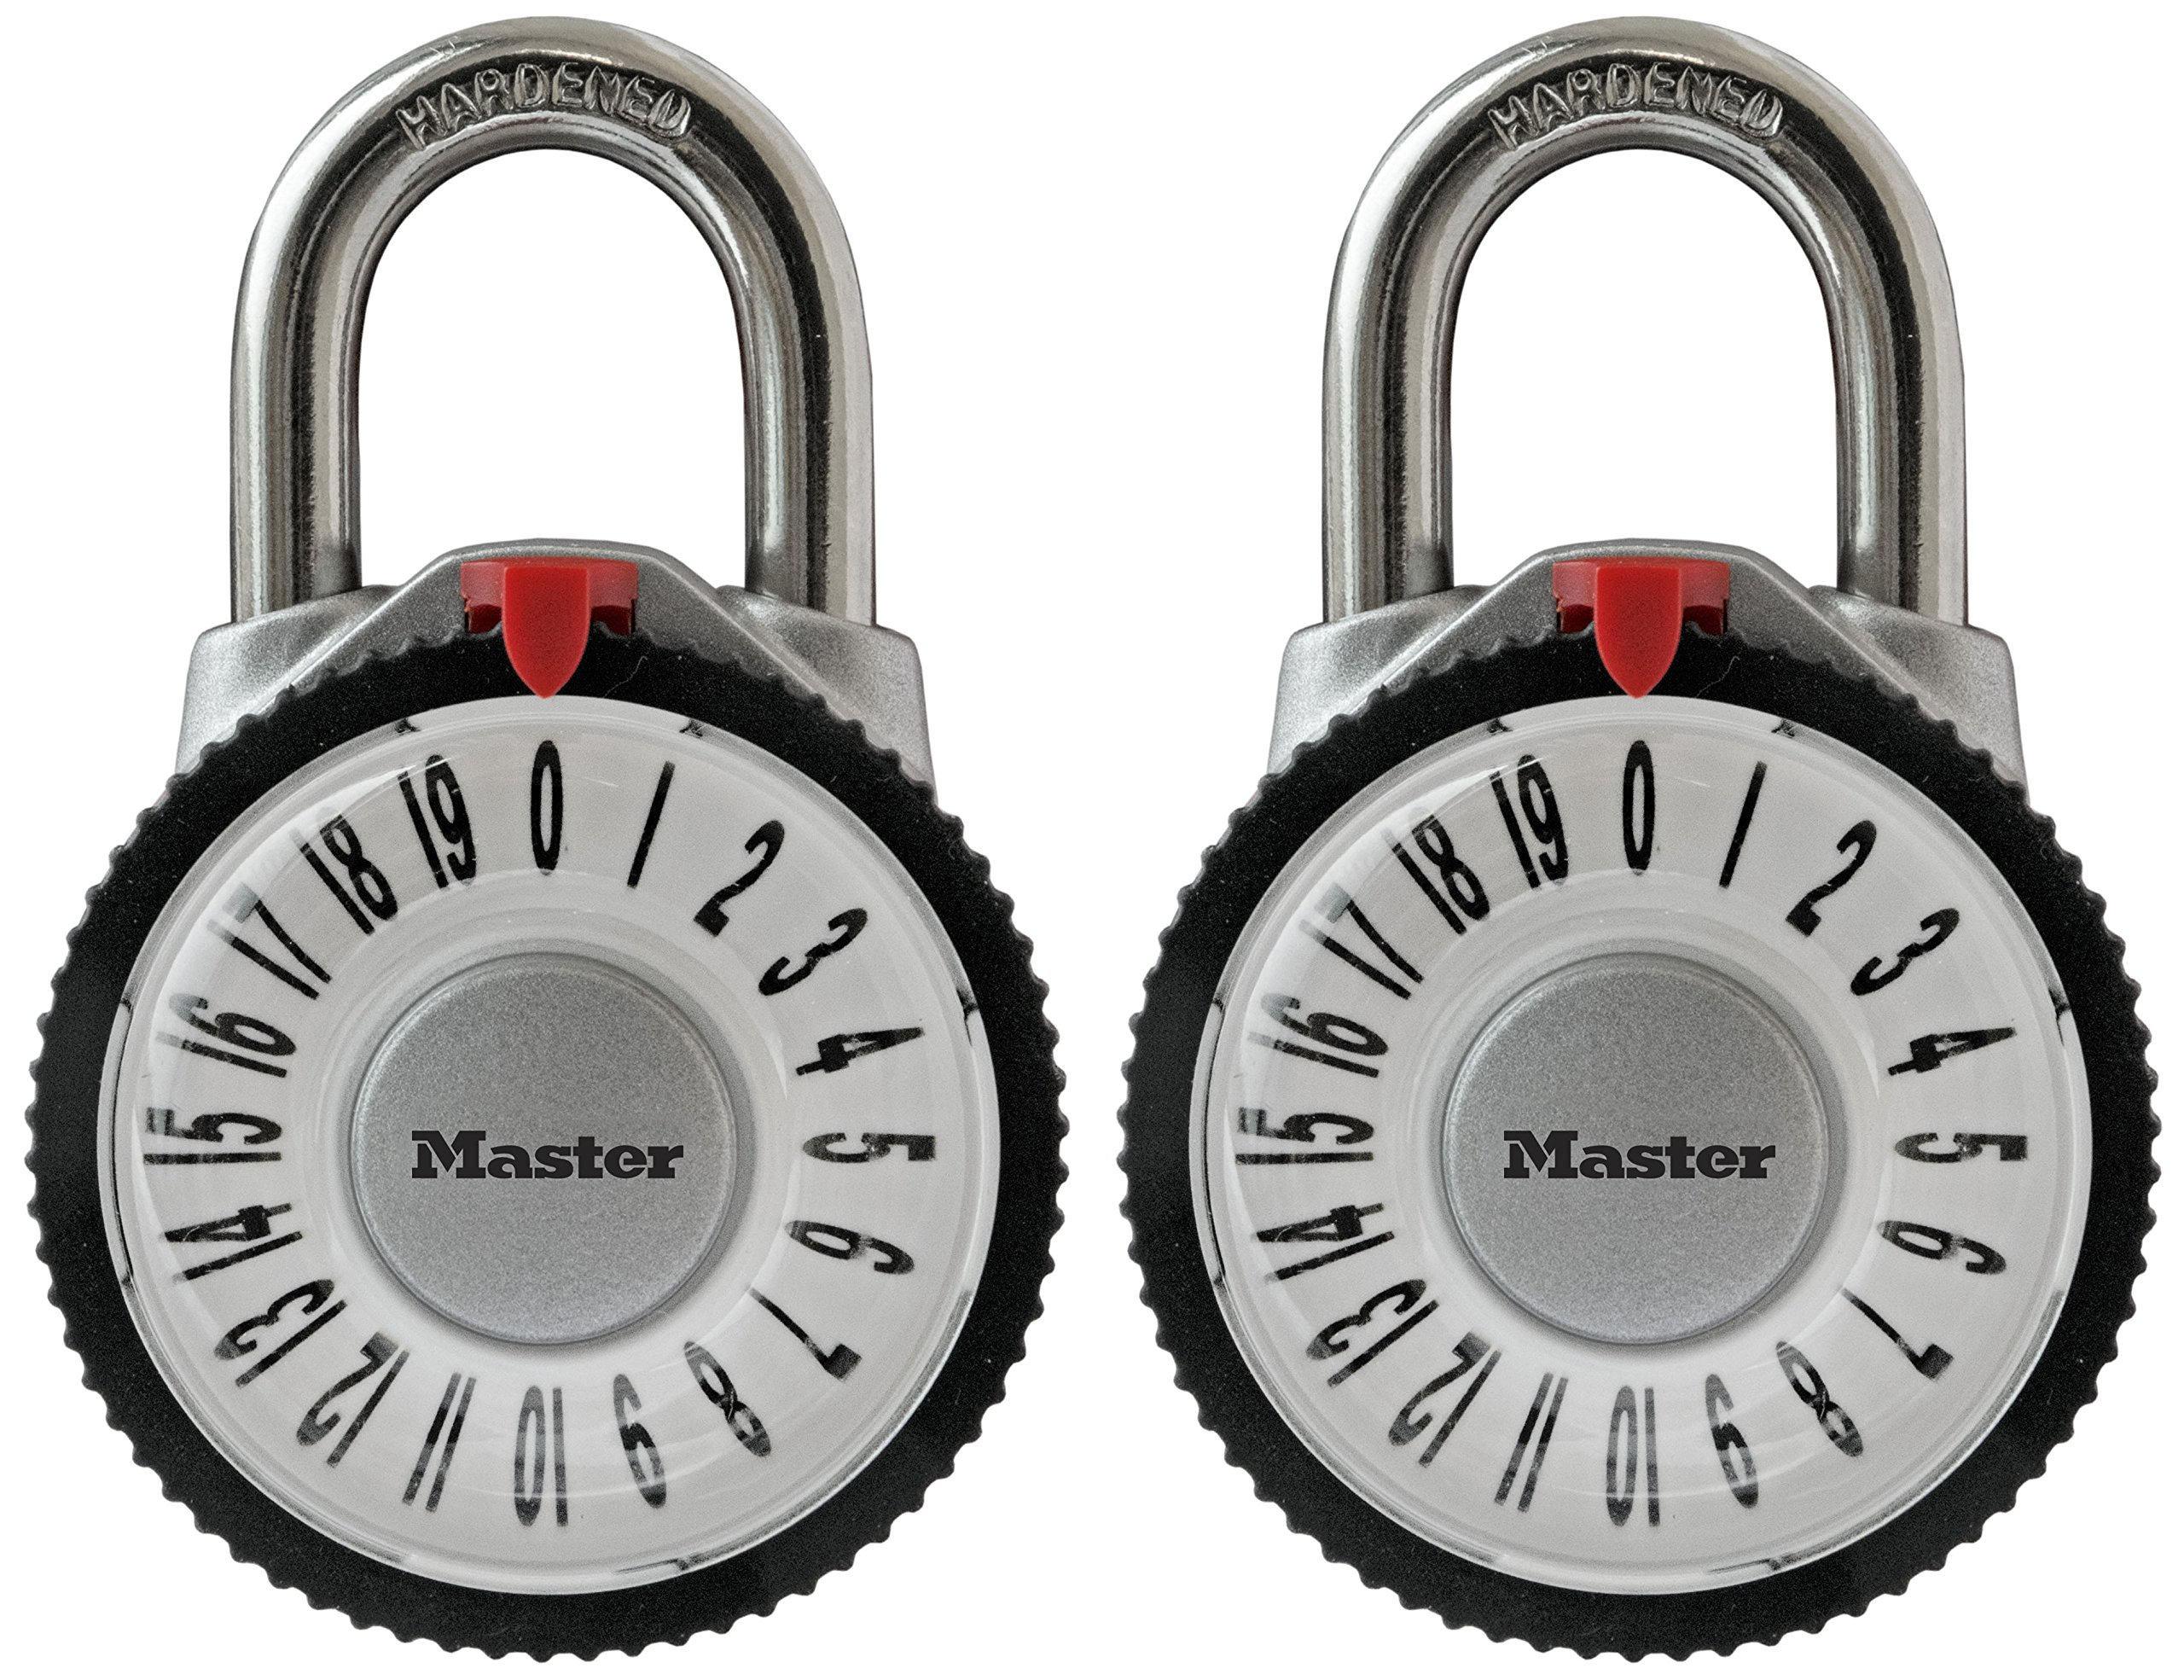 Master Lock Padlock, Standard Dial Combination Lock with Magnification Lens, 2-1/8 in. Wide, Assorted Colors, 1588T (Pack of 2-Combination Alike) by Master Lock (Image #2)